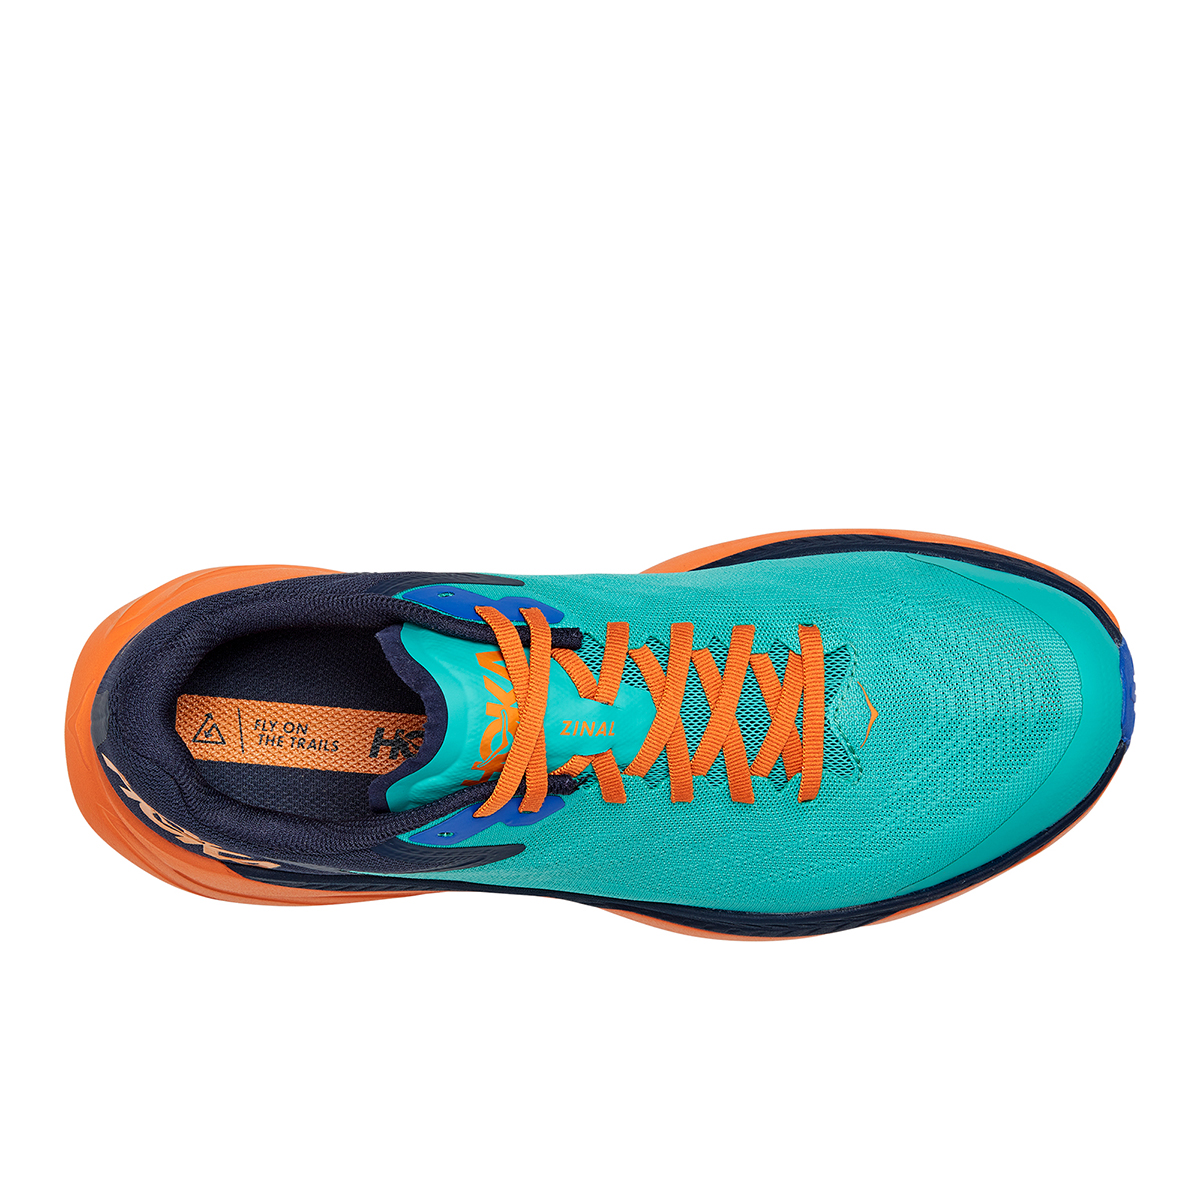 Men's Hoka One One Zinal Trail Running Shoe - Color: Atlantis / Outer Space - Size: 7 - Width: Narrow, Atlantis / Outer Space, large, image 3